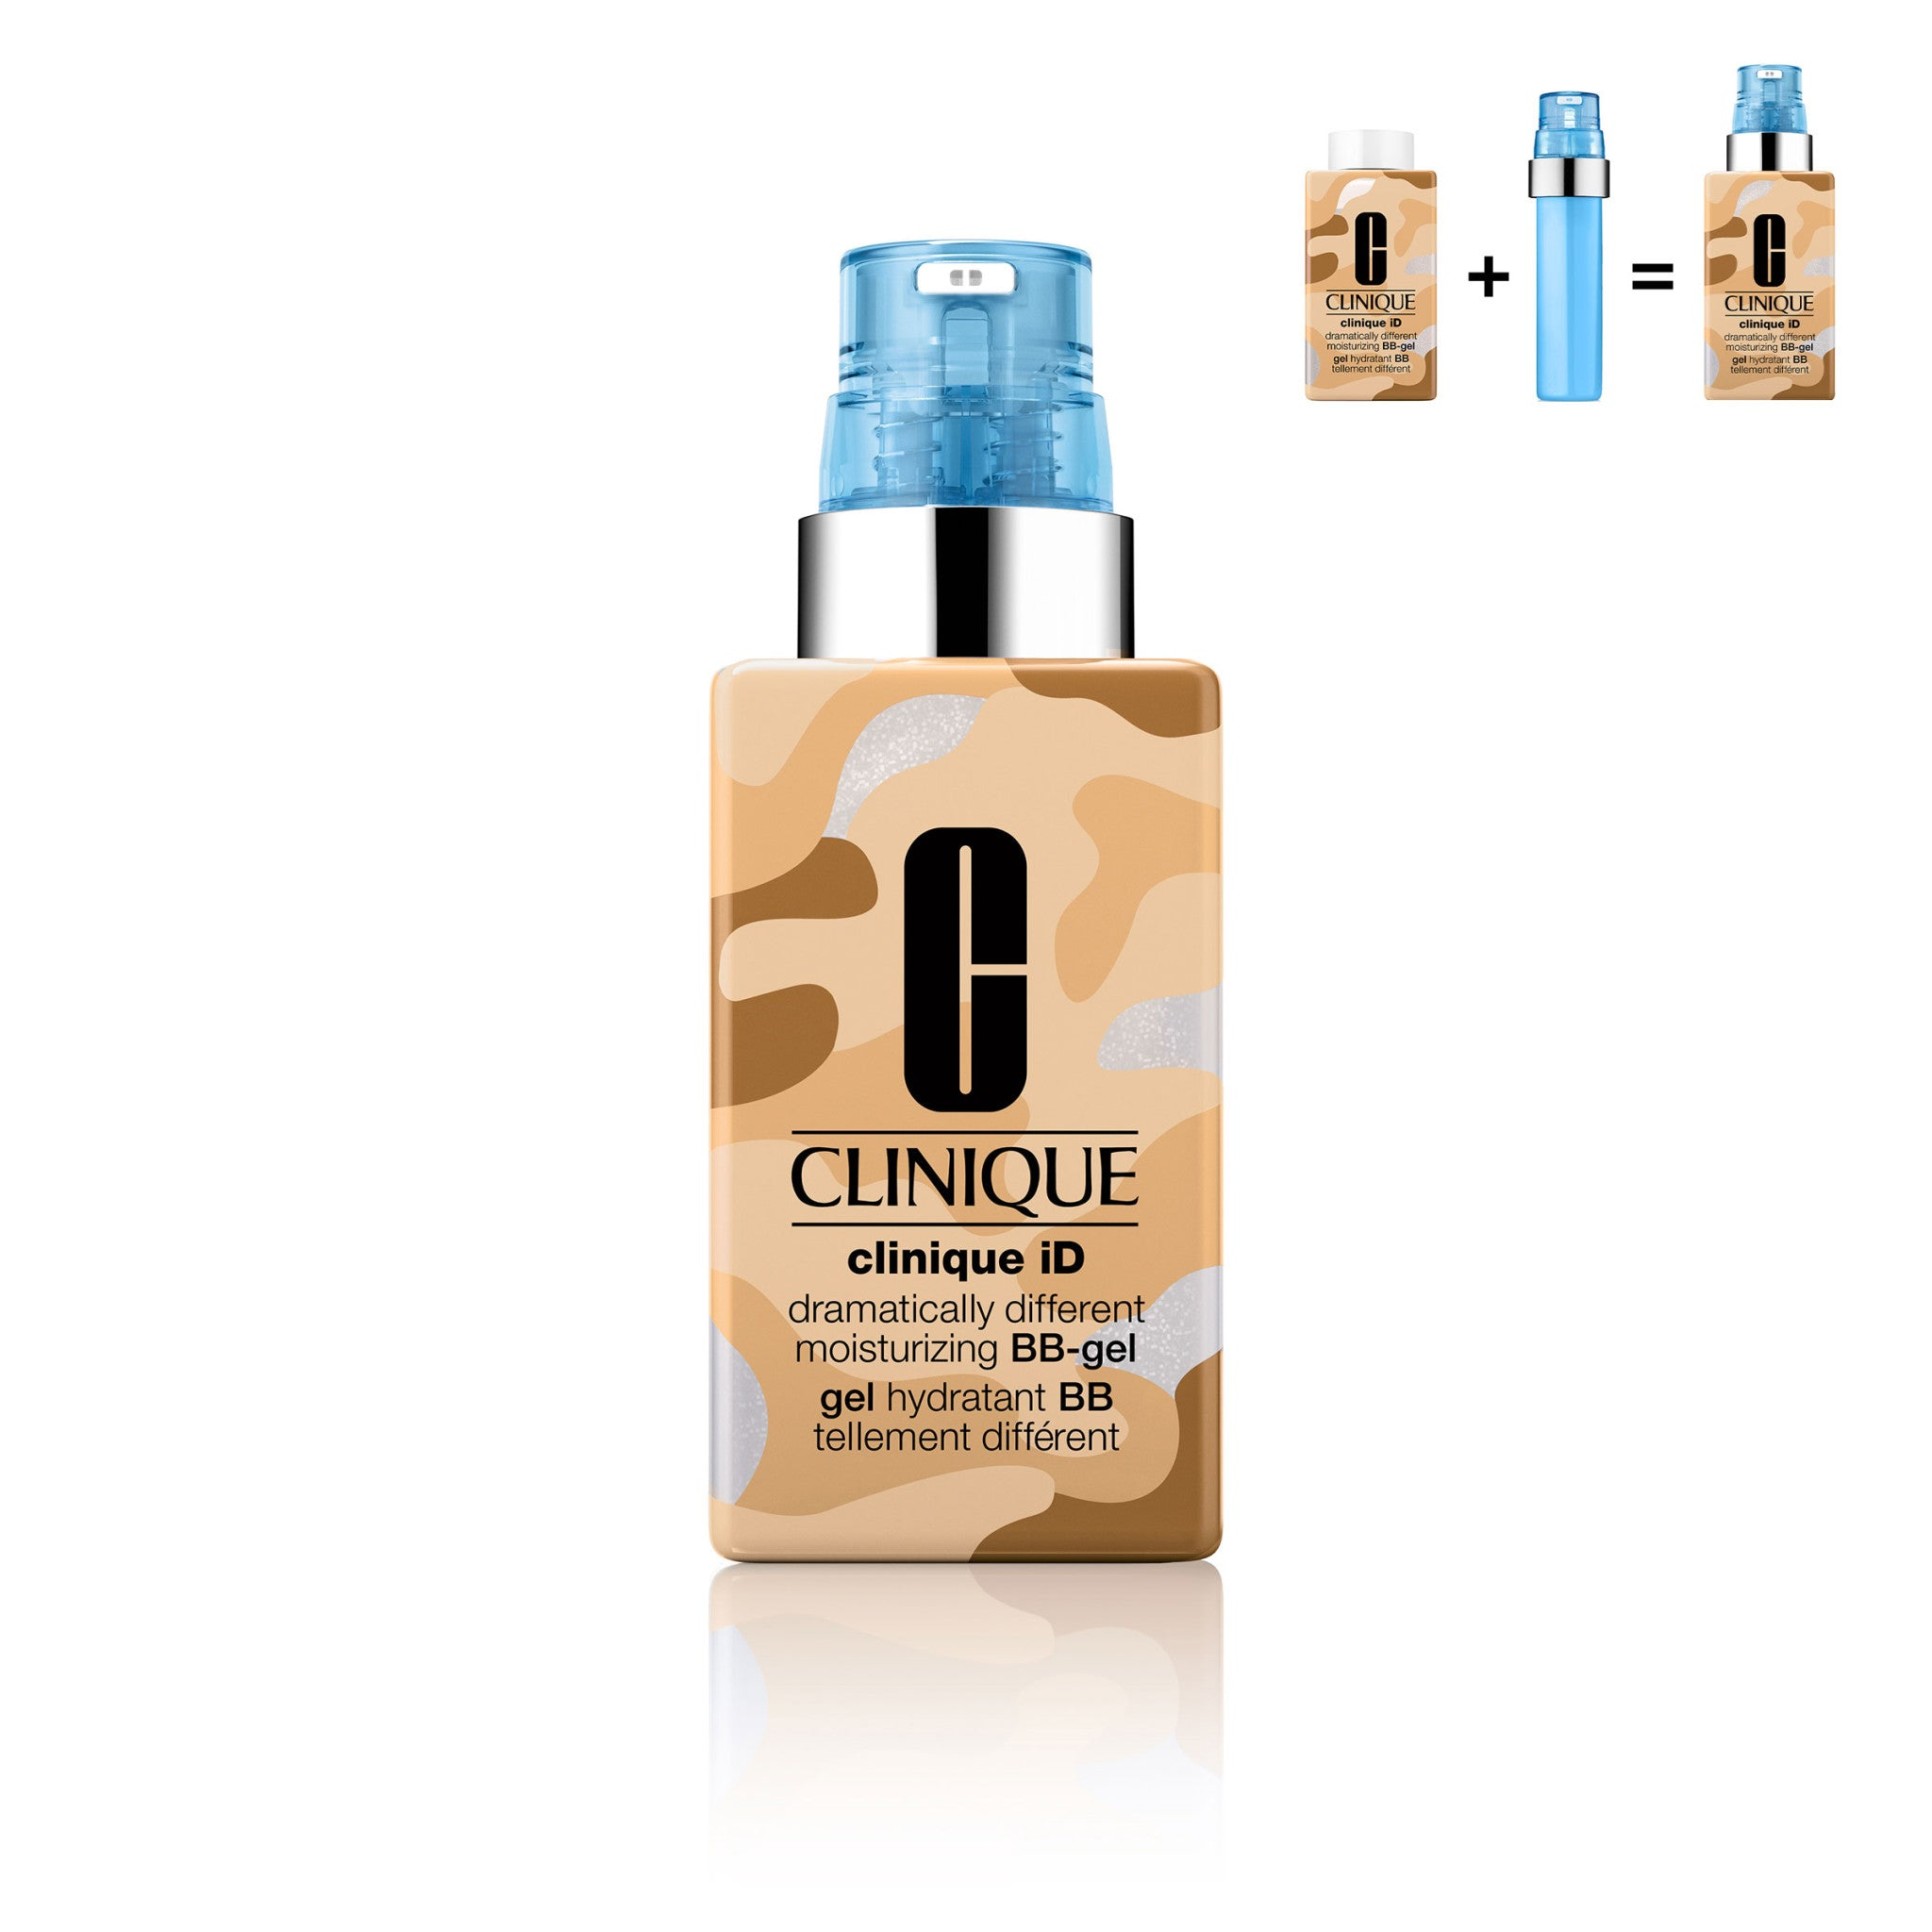 Clinique iD™: Dramatically Different™ Moisturizing BB-gel for Pores & Uneven Texture